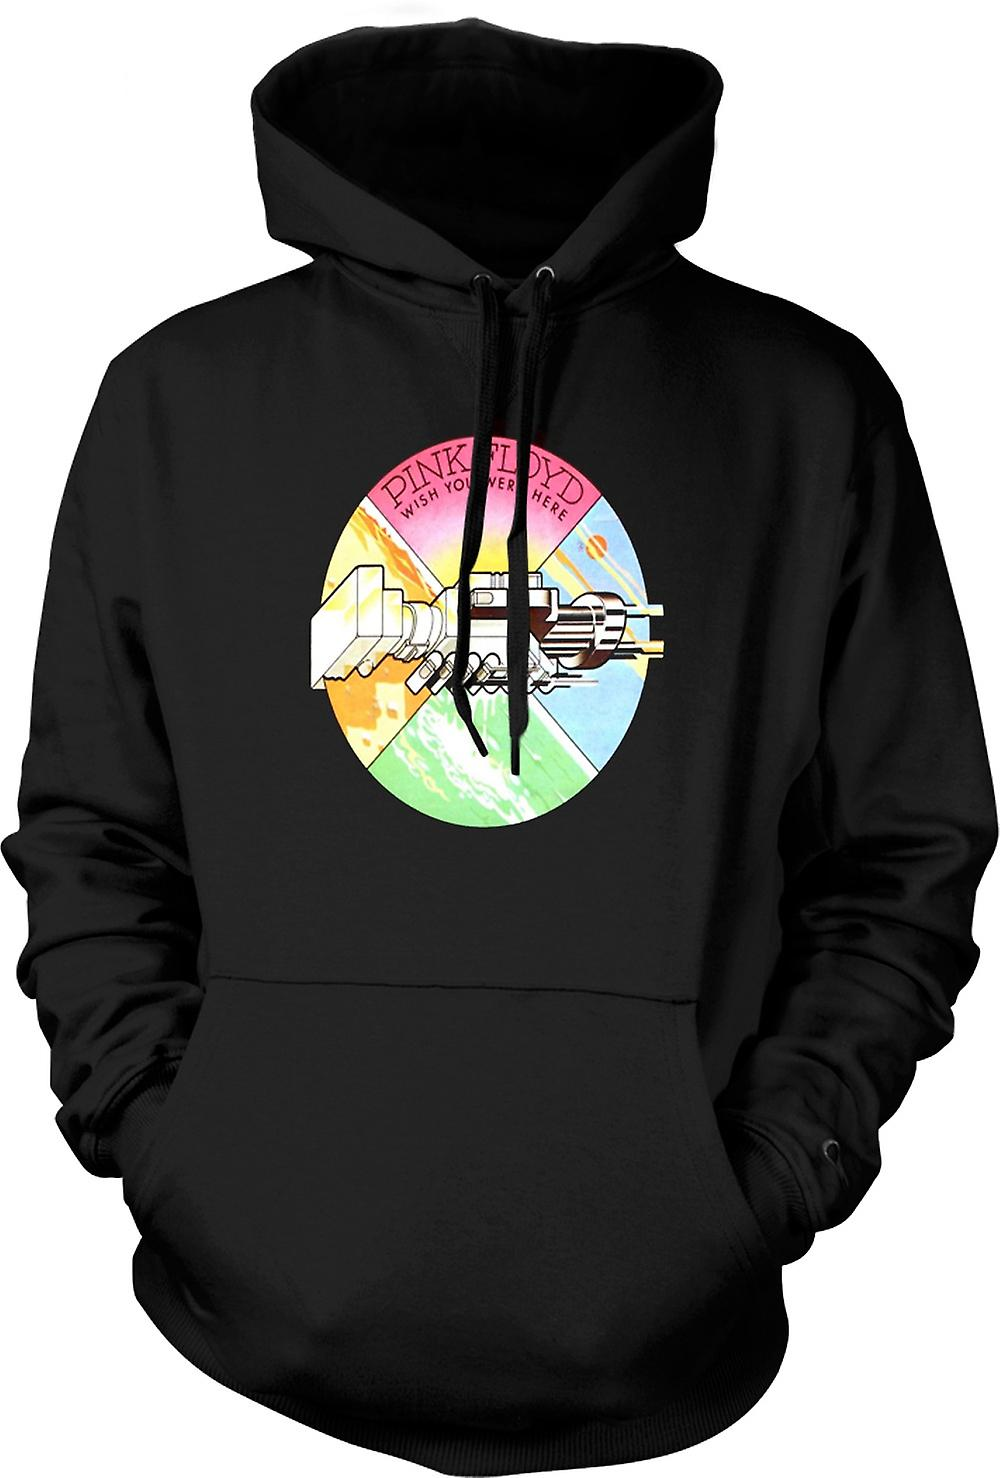 Kids Hoodie - Pink Floyd - Wish You Were - Here